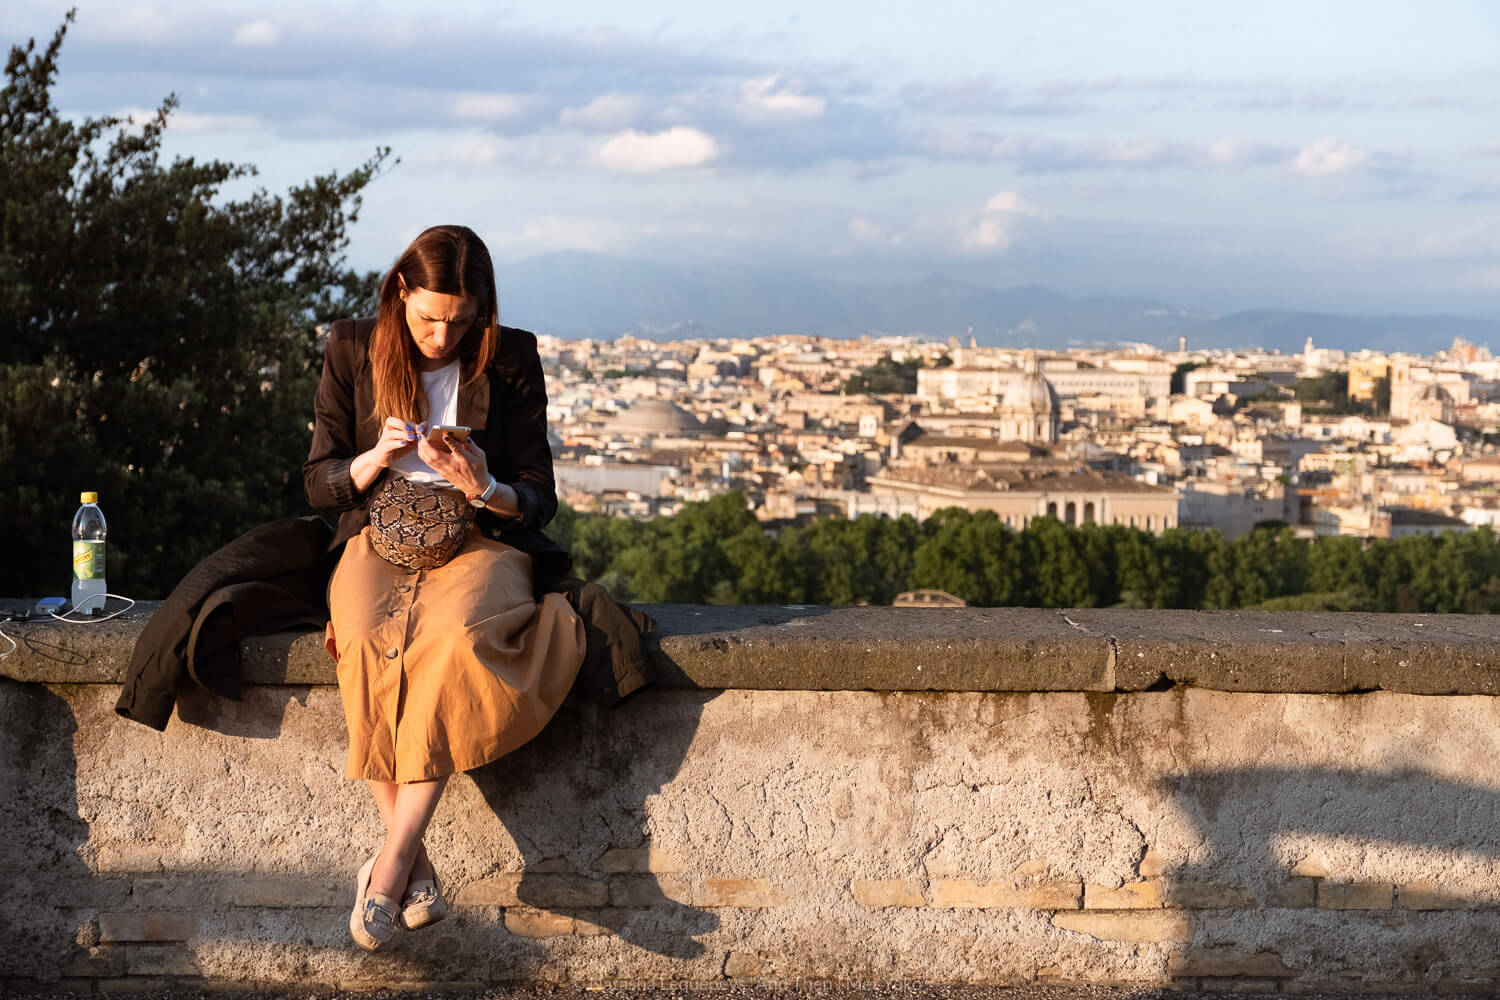 """A woman at the Janiculum Terrace. Travel photography and guide by © Natasha Lequepeys for """"And Then I Met Yoko"""". #rome #italy #travelblog #travelphotography"""